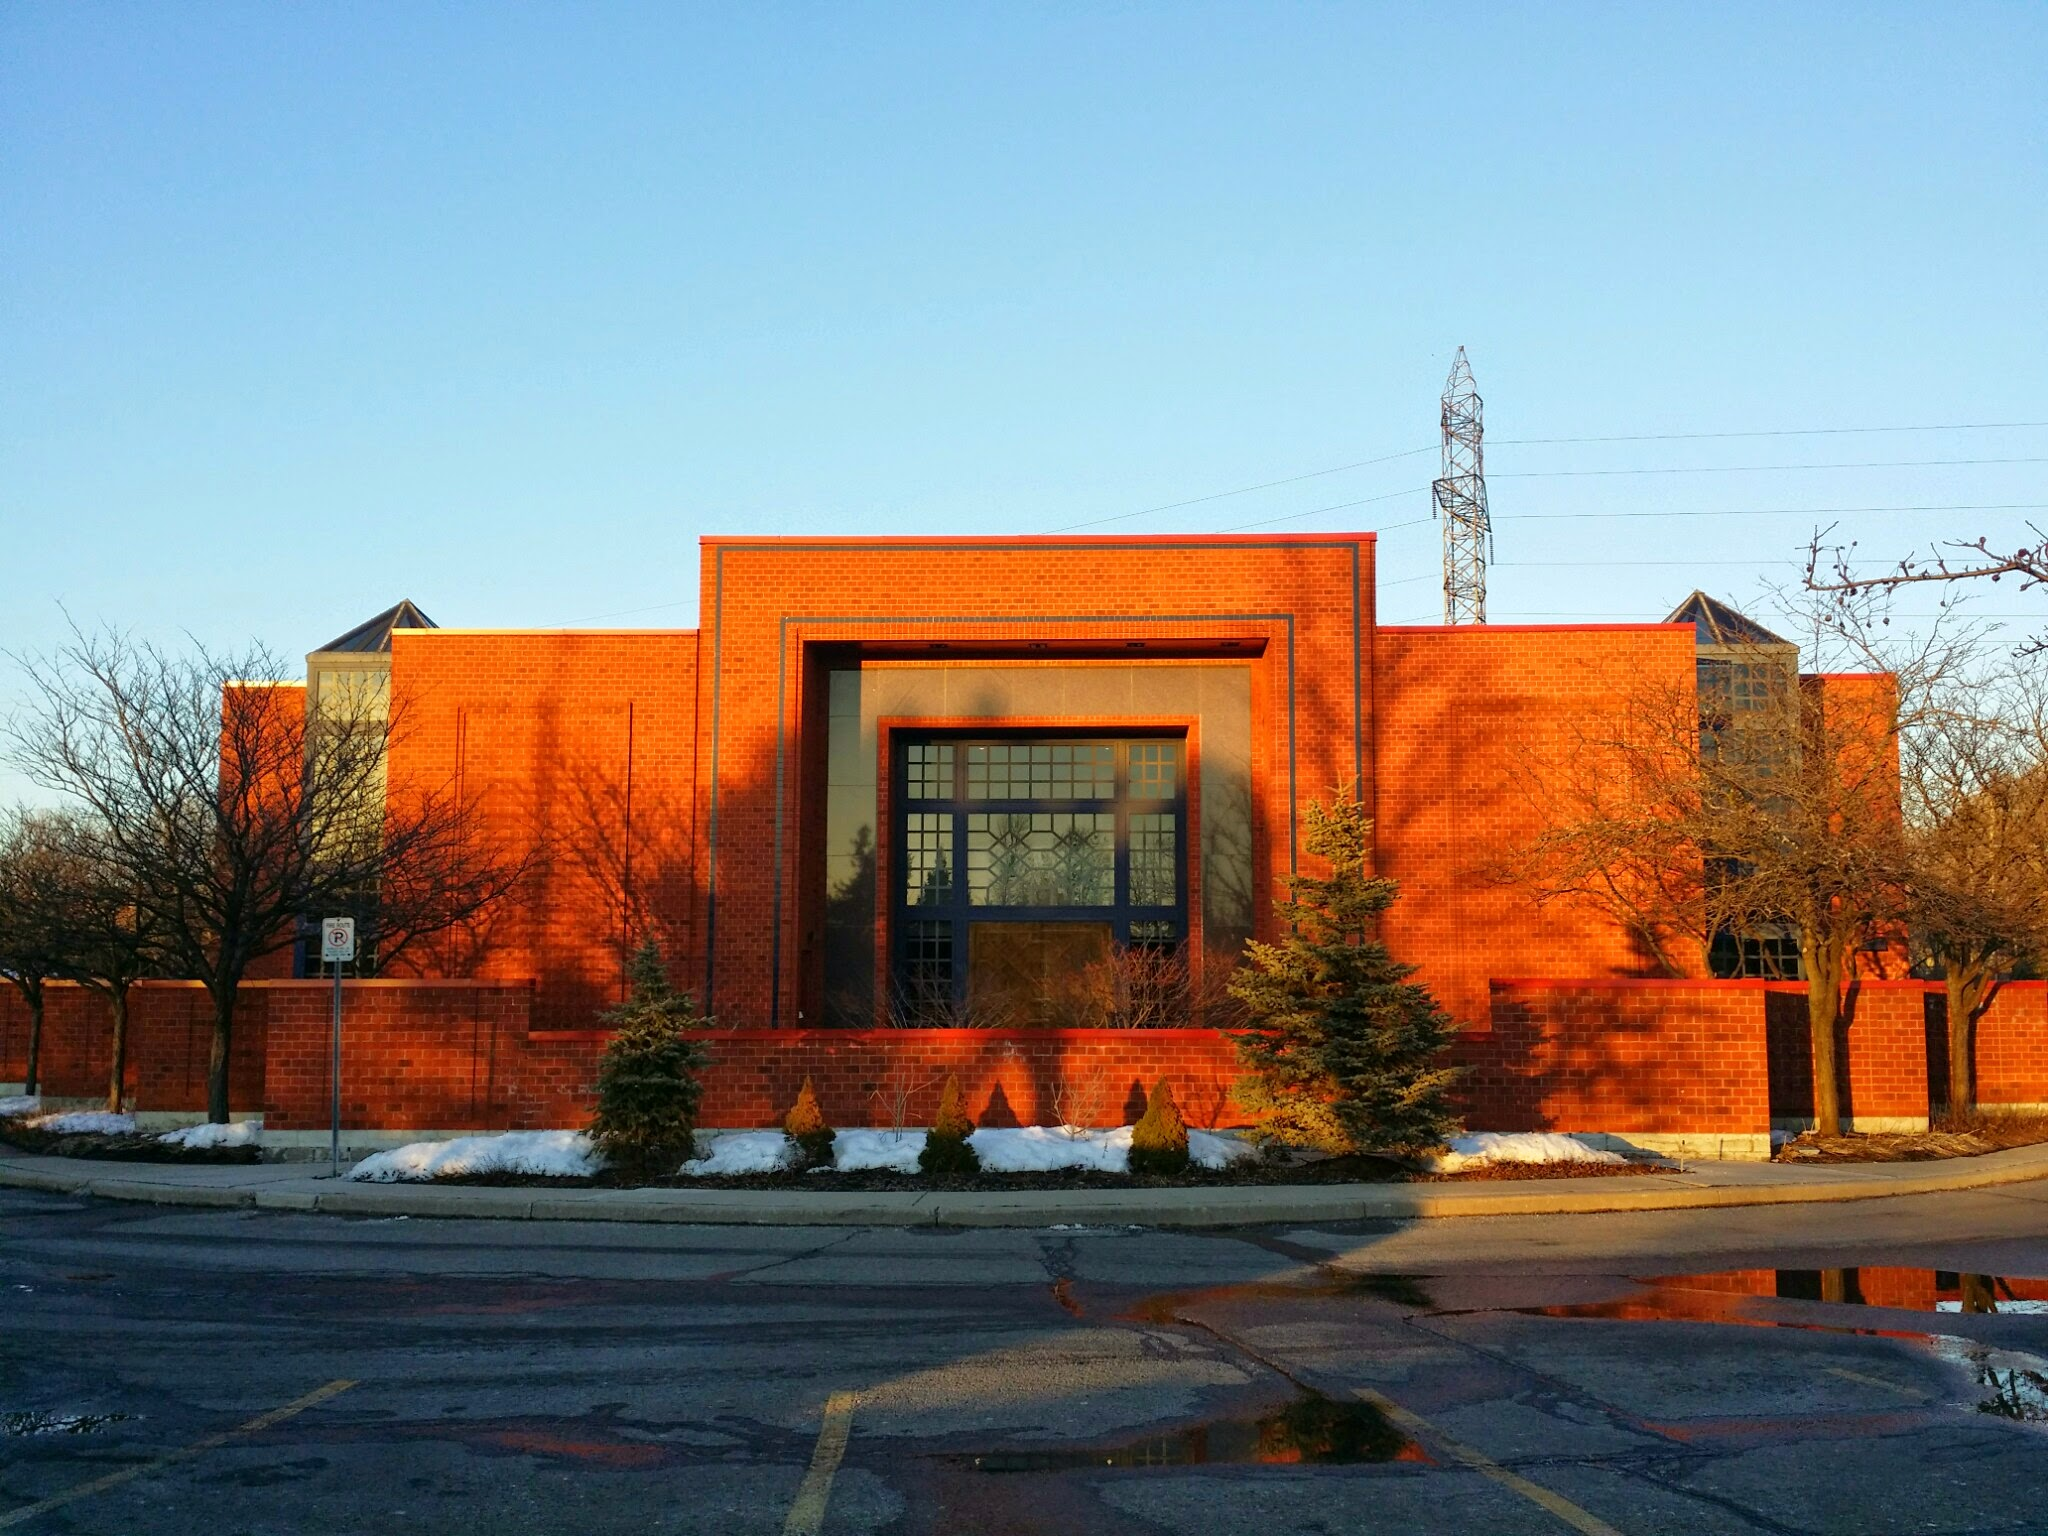 unionville muslim Find therapists in unionville, hartford county, connecticut, psychologists, marriage counseling, therapy, counselors, psychiatrists, child psychologists and couples .